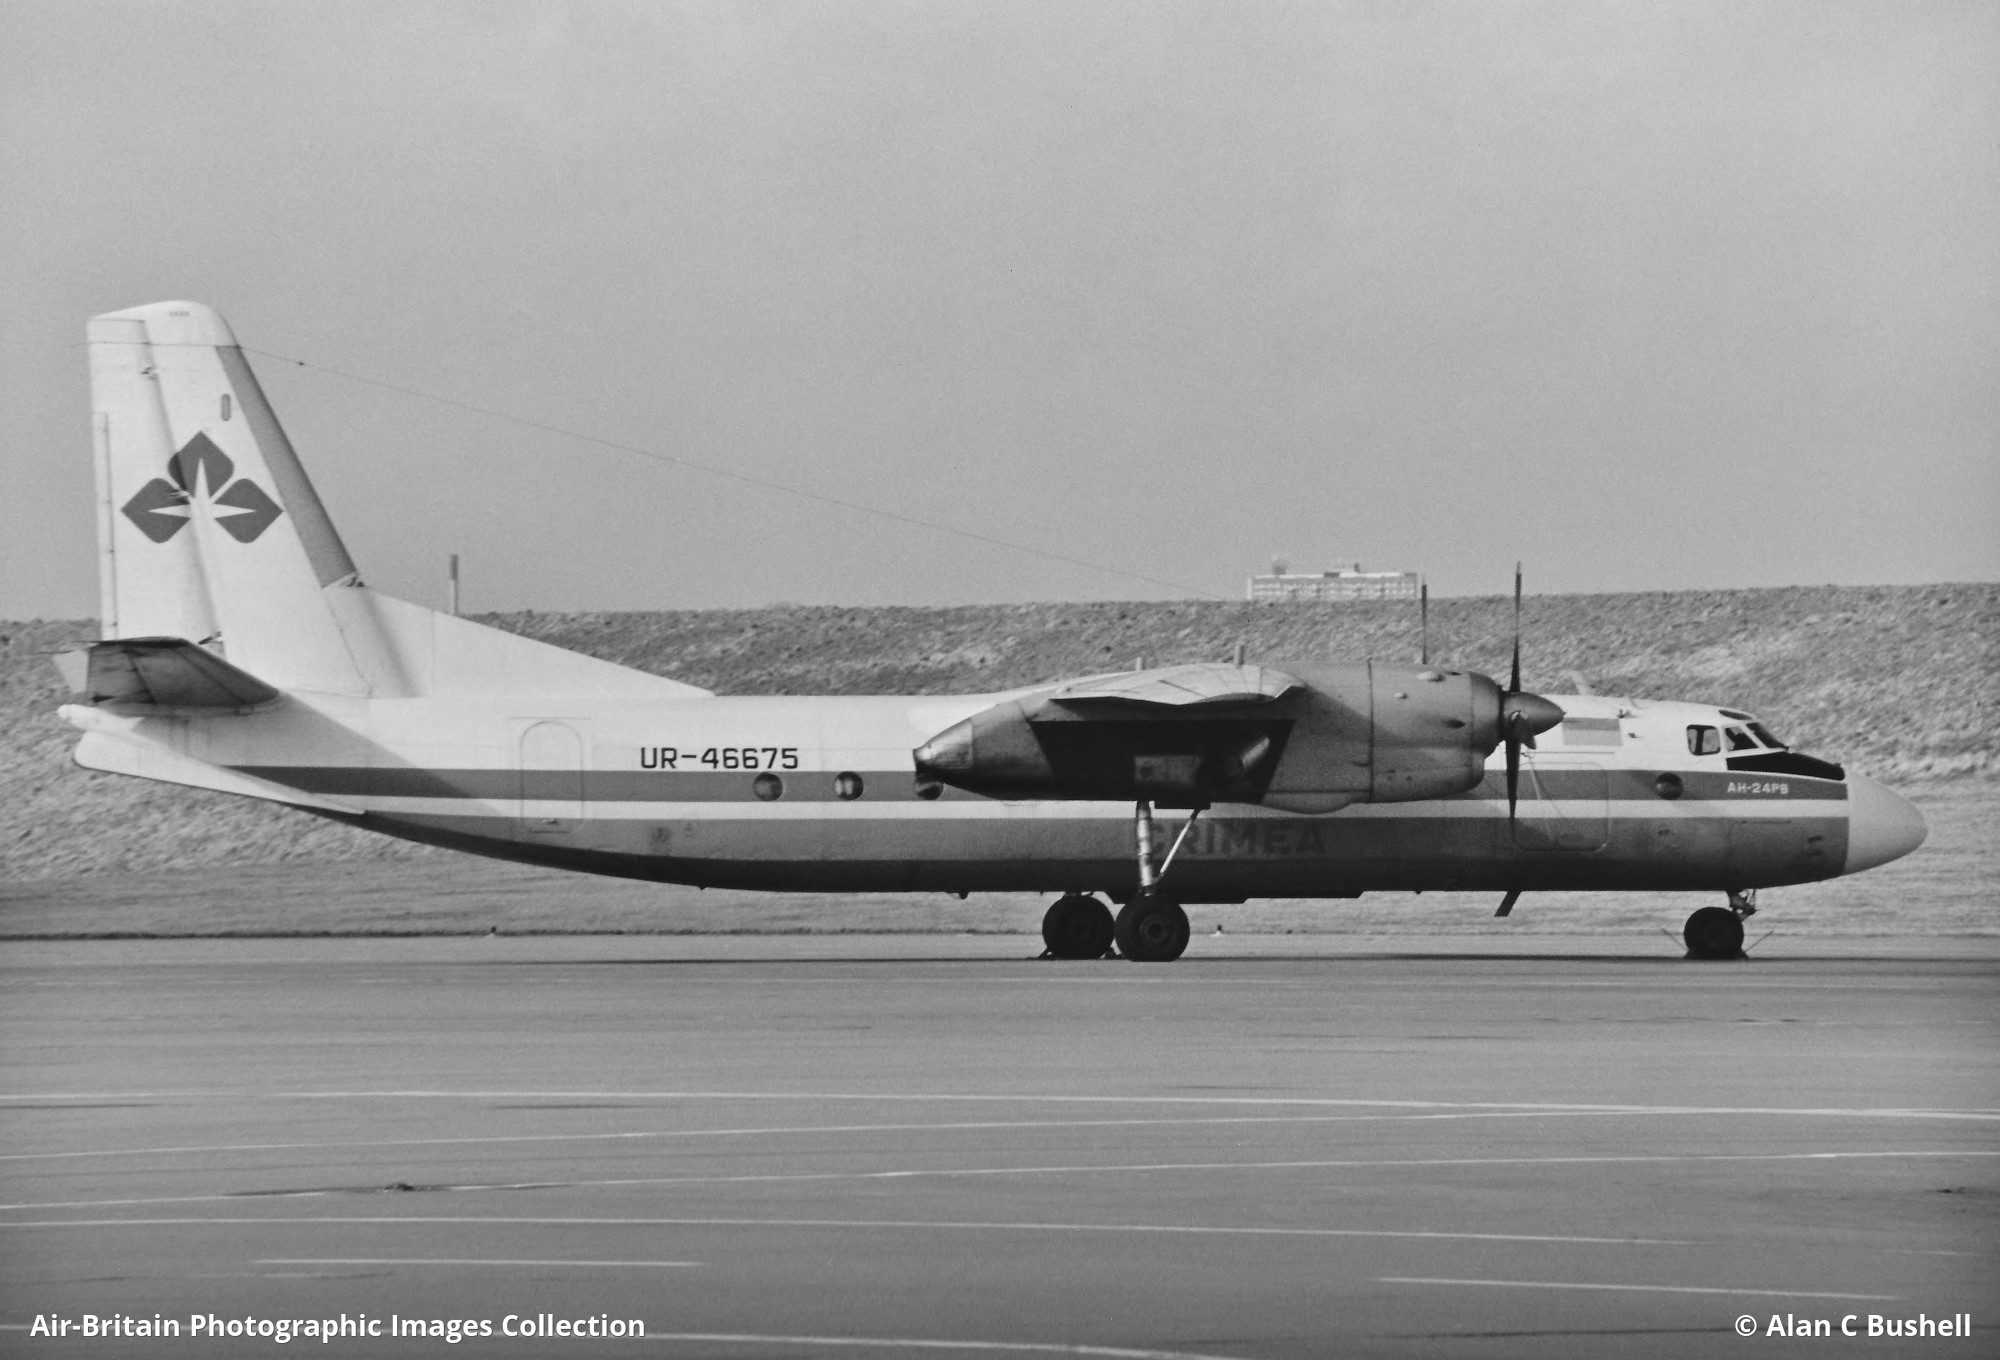 UR-46675 · Antonov An-24RV · Crimea Air (OR / CRF) · Birmingham -  International (Elmdon) (BHX / EGBB), UK - England · Alan C Bushell -  27/02/1994